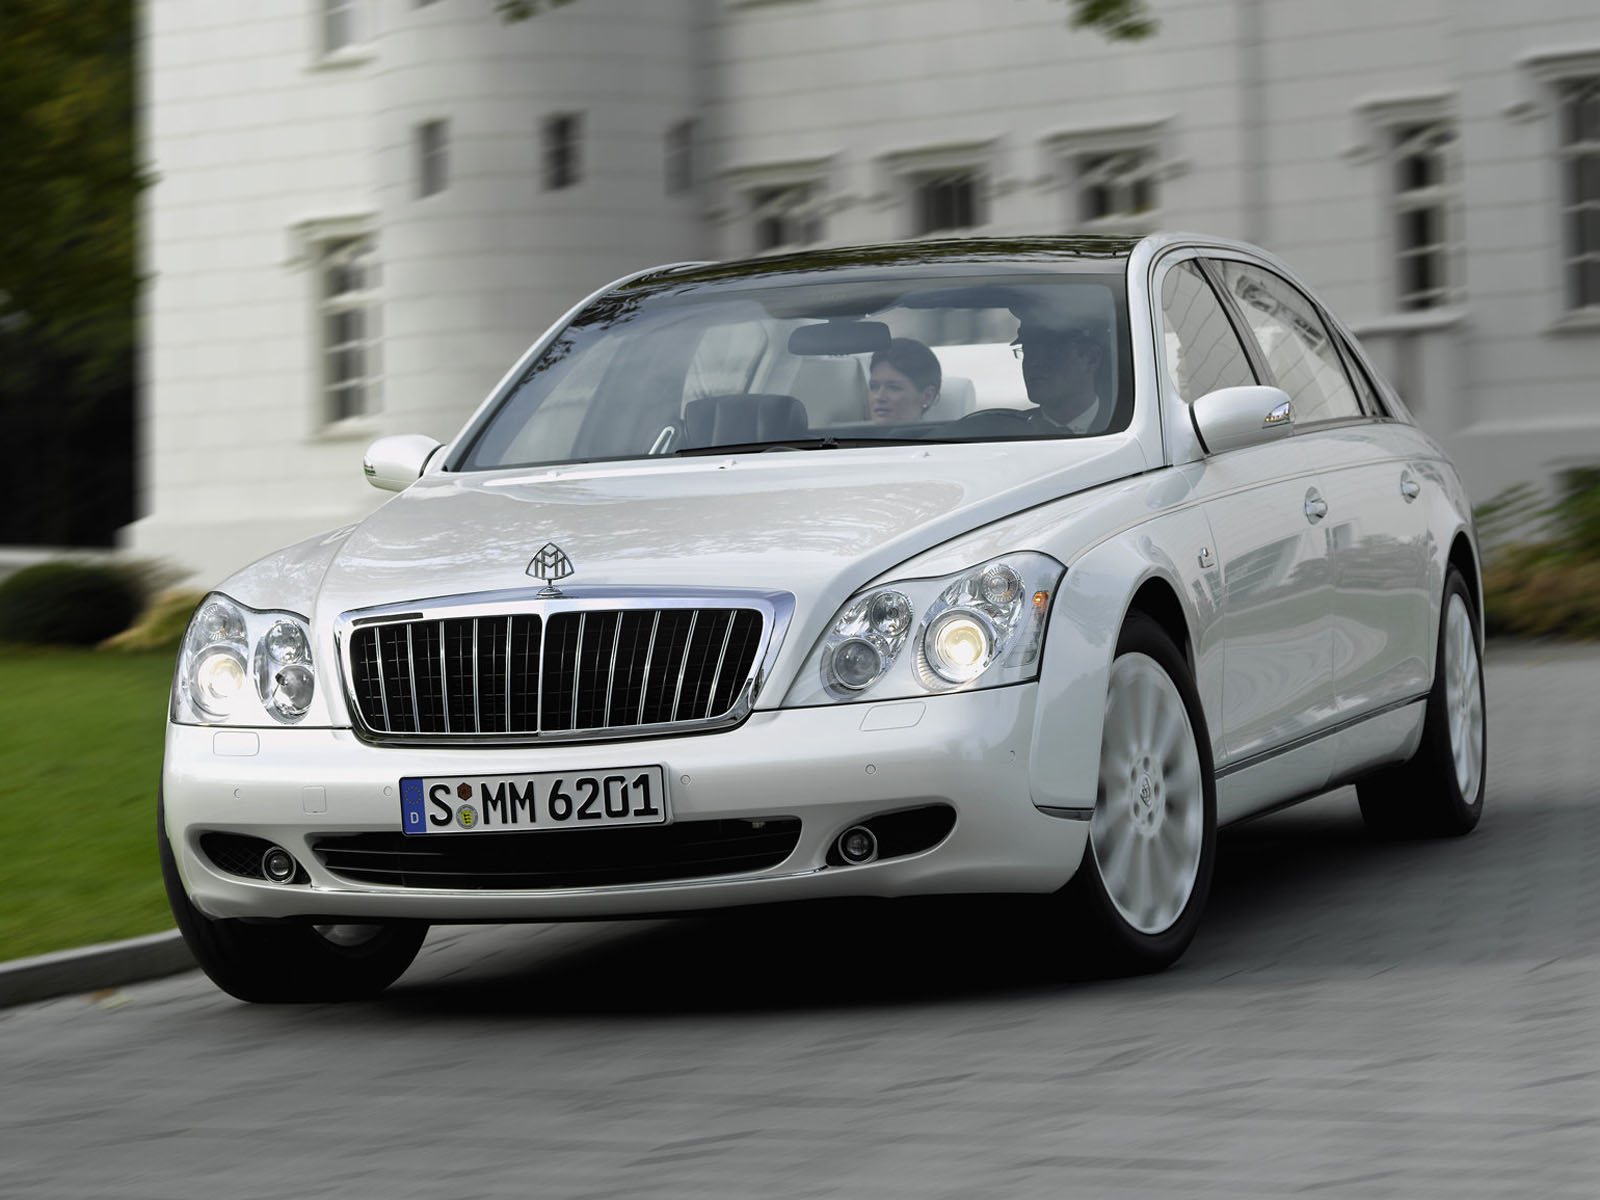 Maybach | Car Company Wiki | FANDOM powered by Wikia